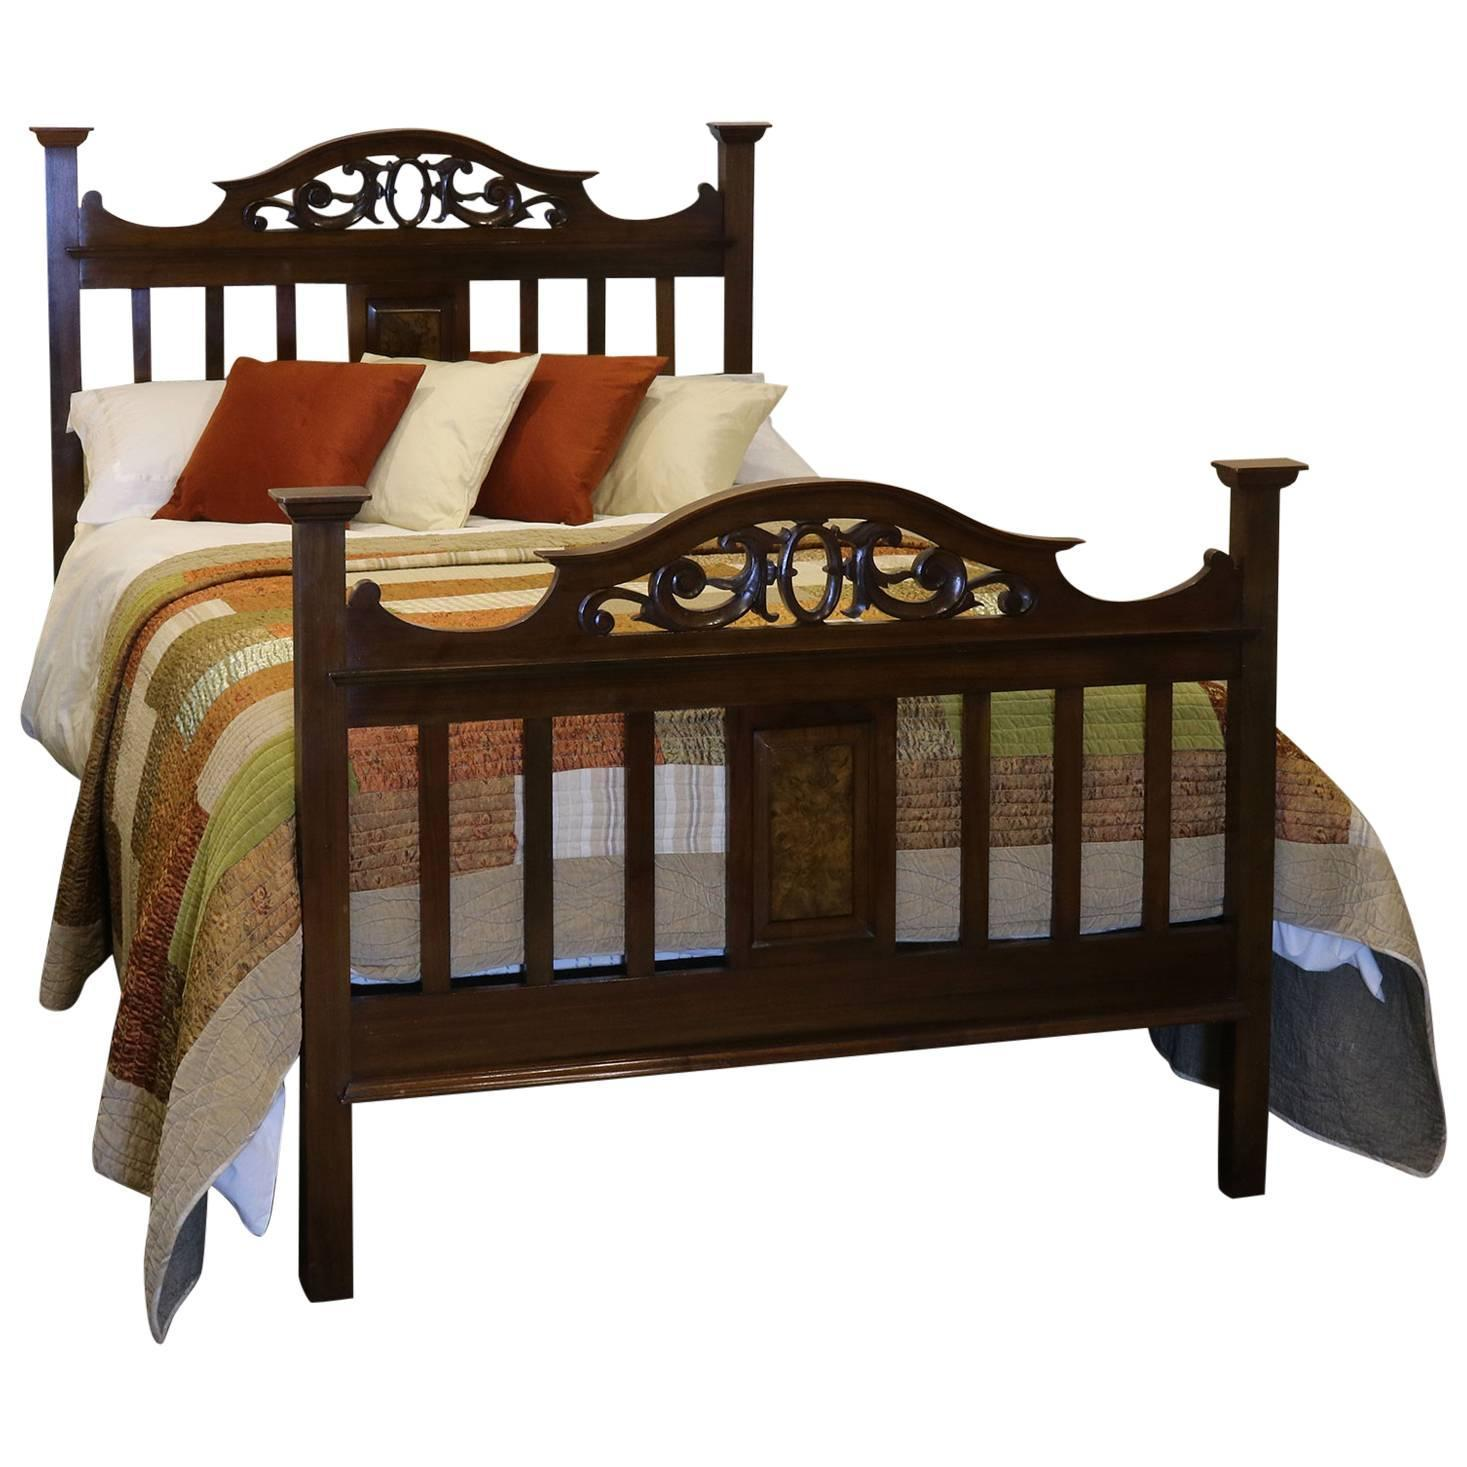 Arts and crafts style mahogany bed wd12 for sale at 1stdibs for Arts and crafts beds